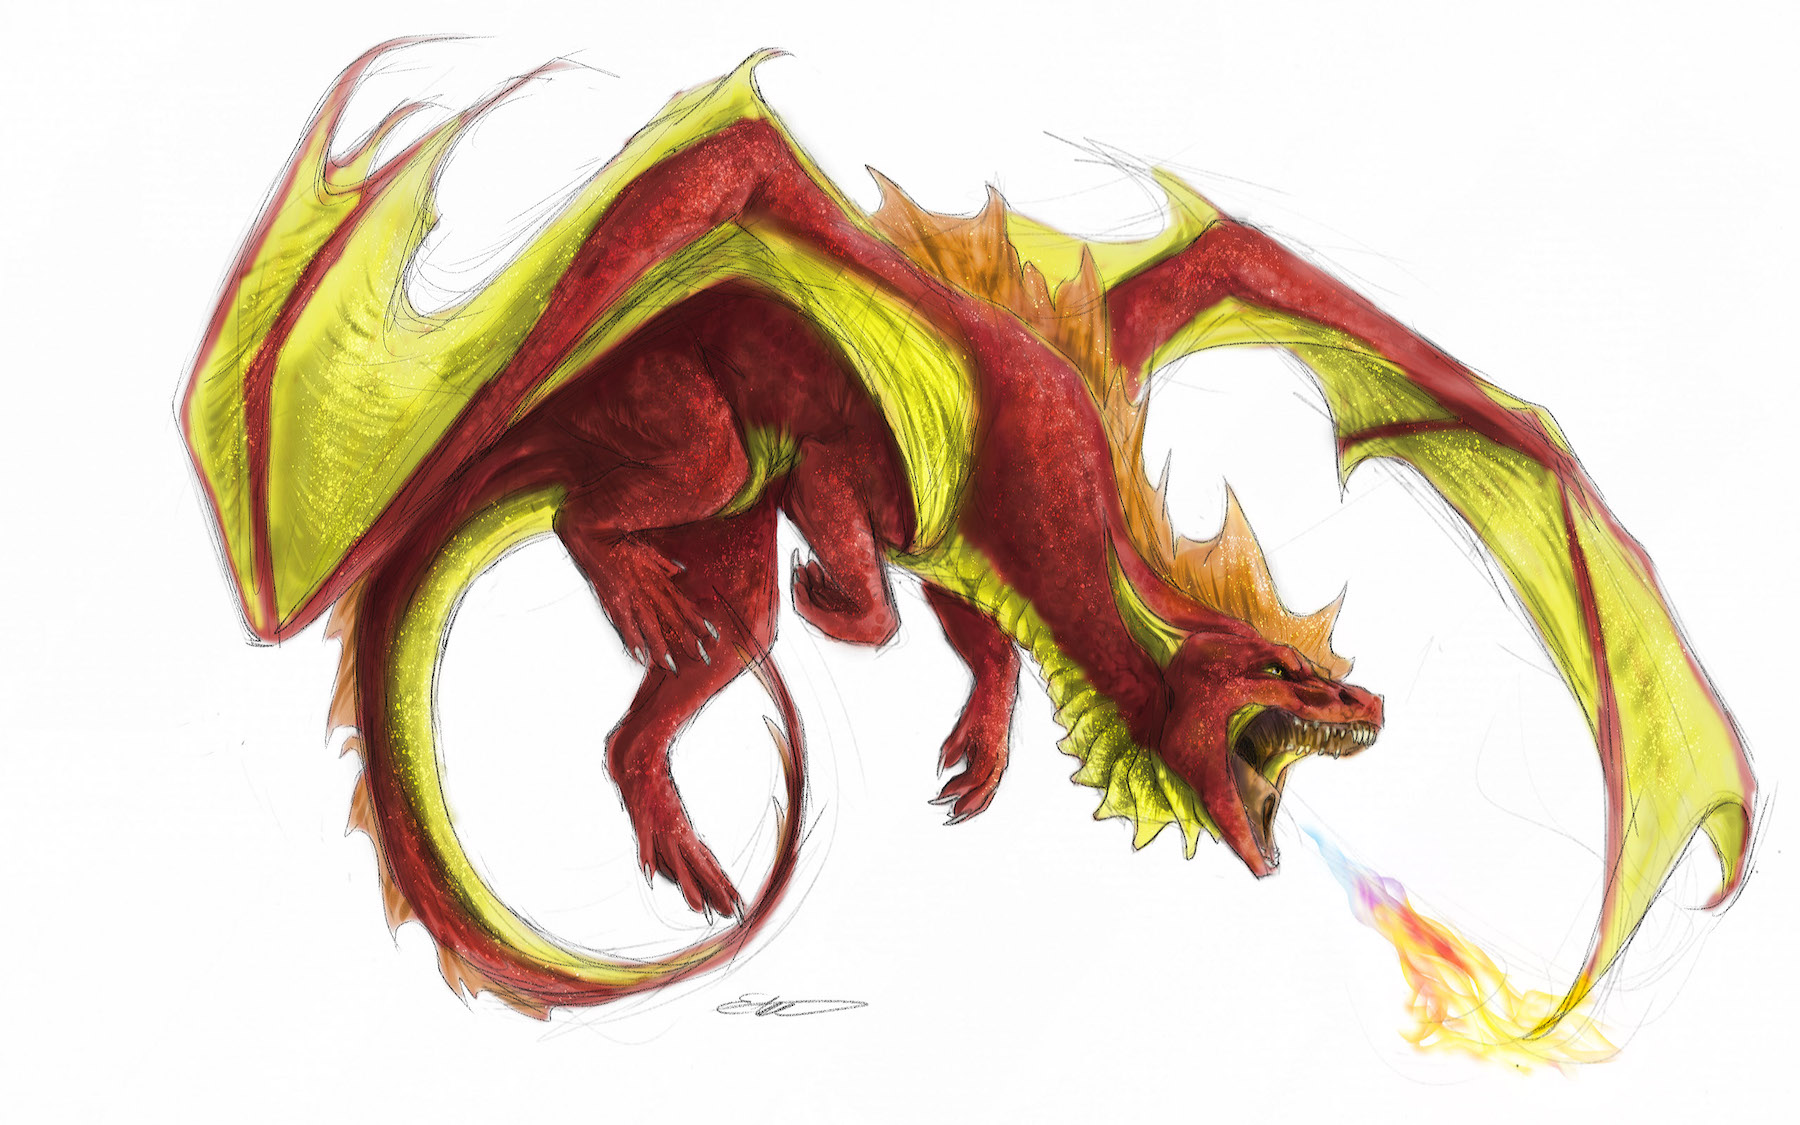 Dragon Spitting Fire with Savourychaffinch